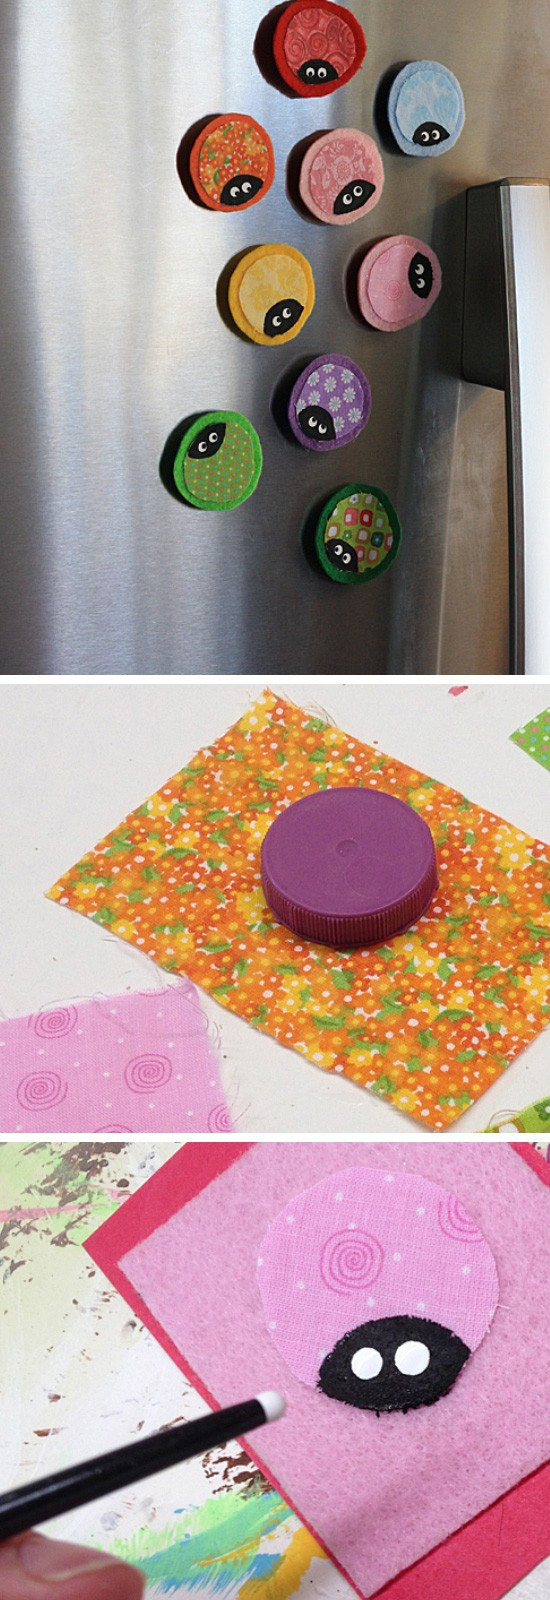 Craft Project For Toddler  30 Creative DIY Spring Crafts for Kids